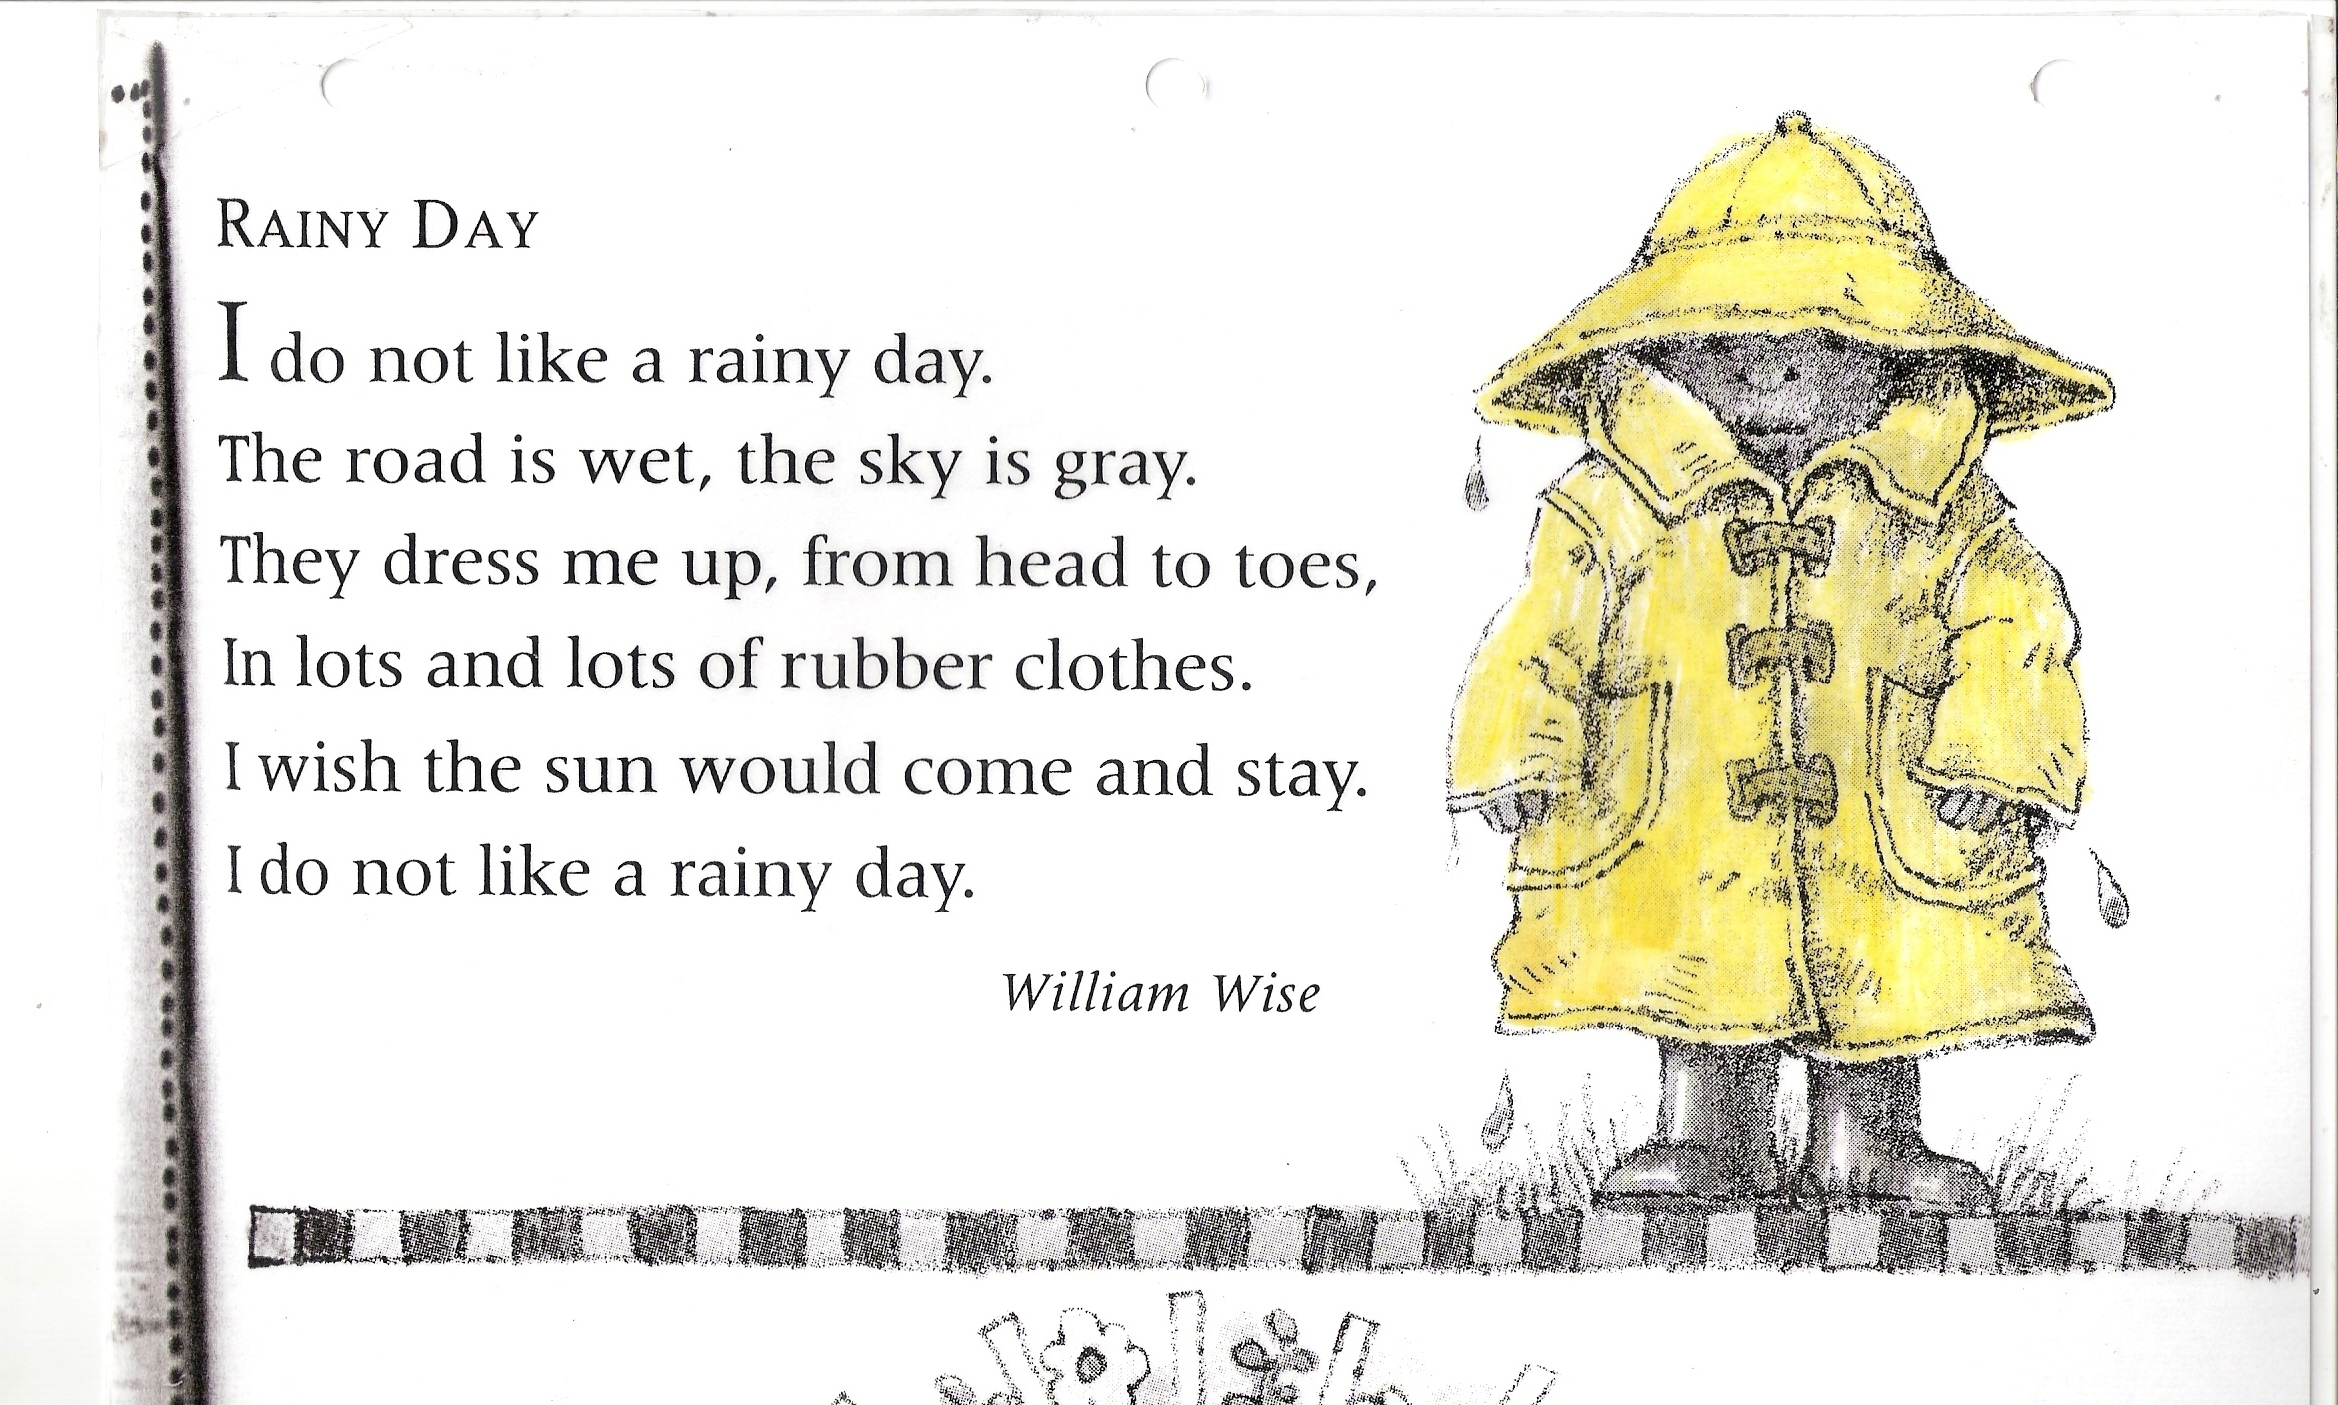 Poem No 14 Rainy Day